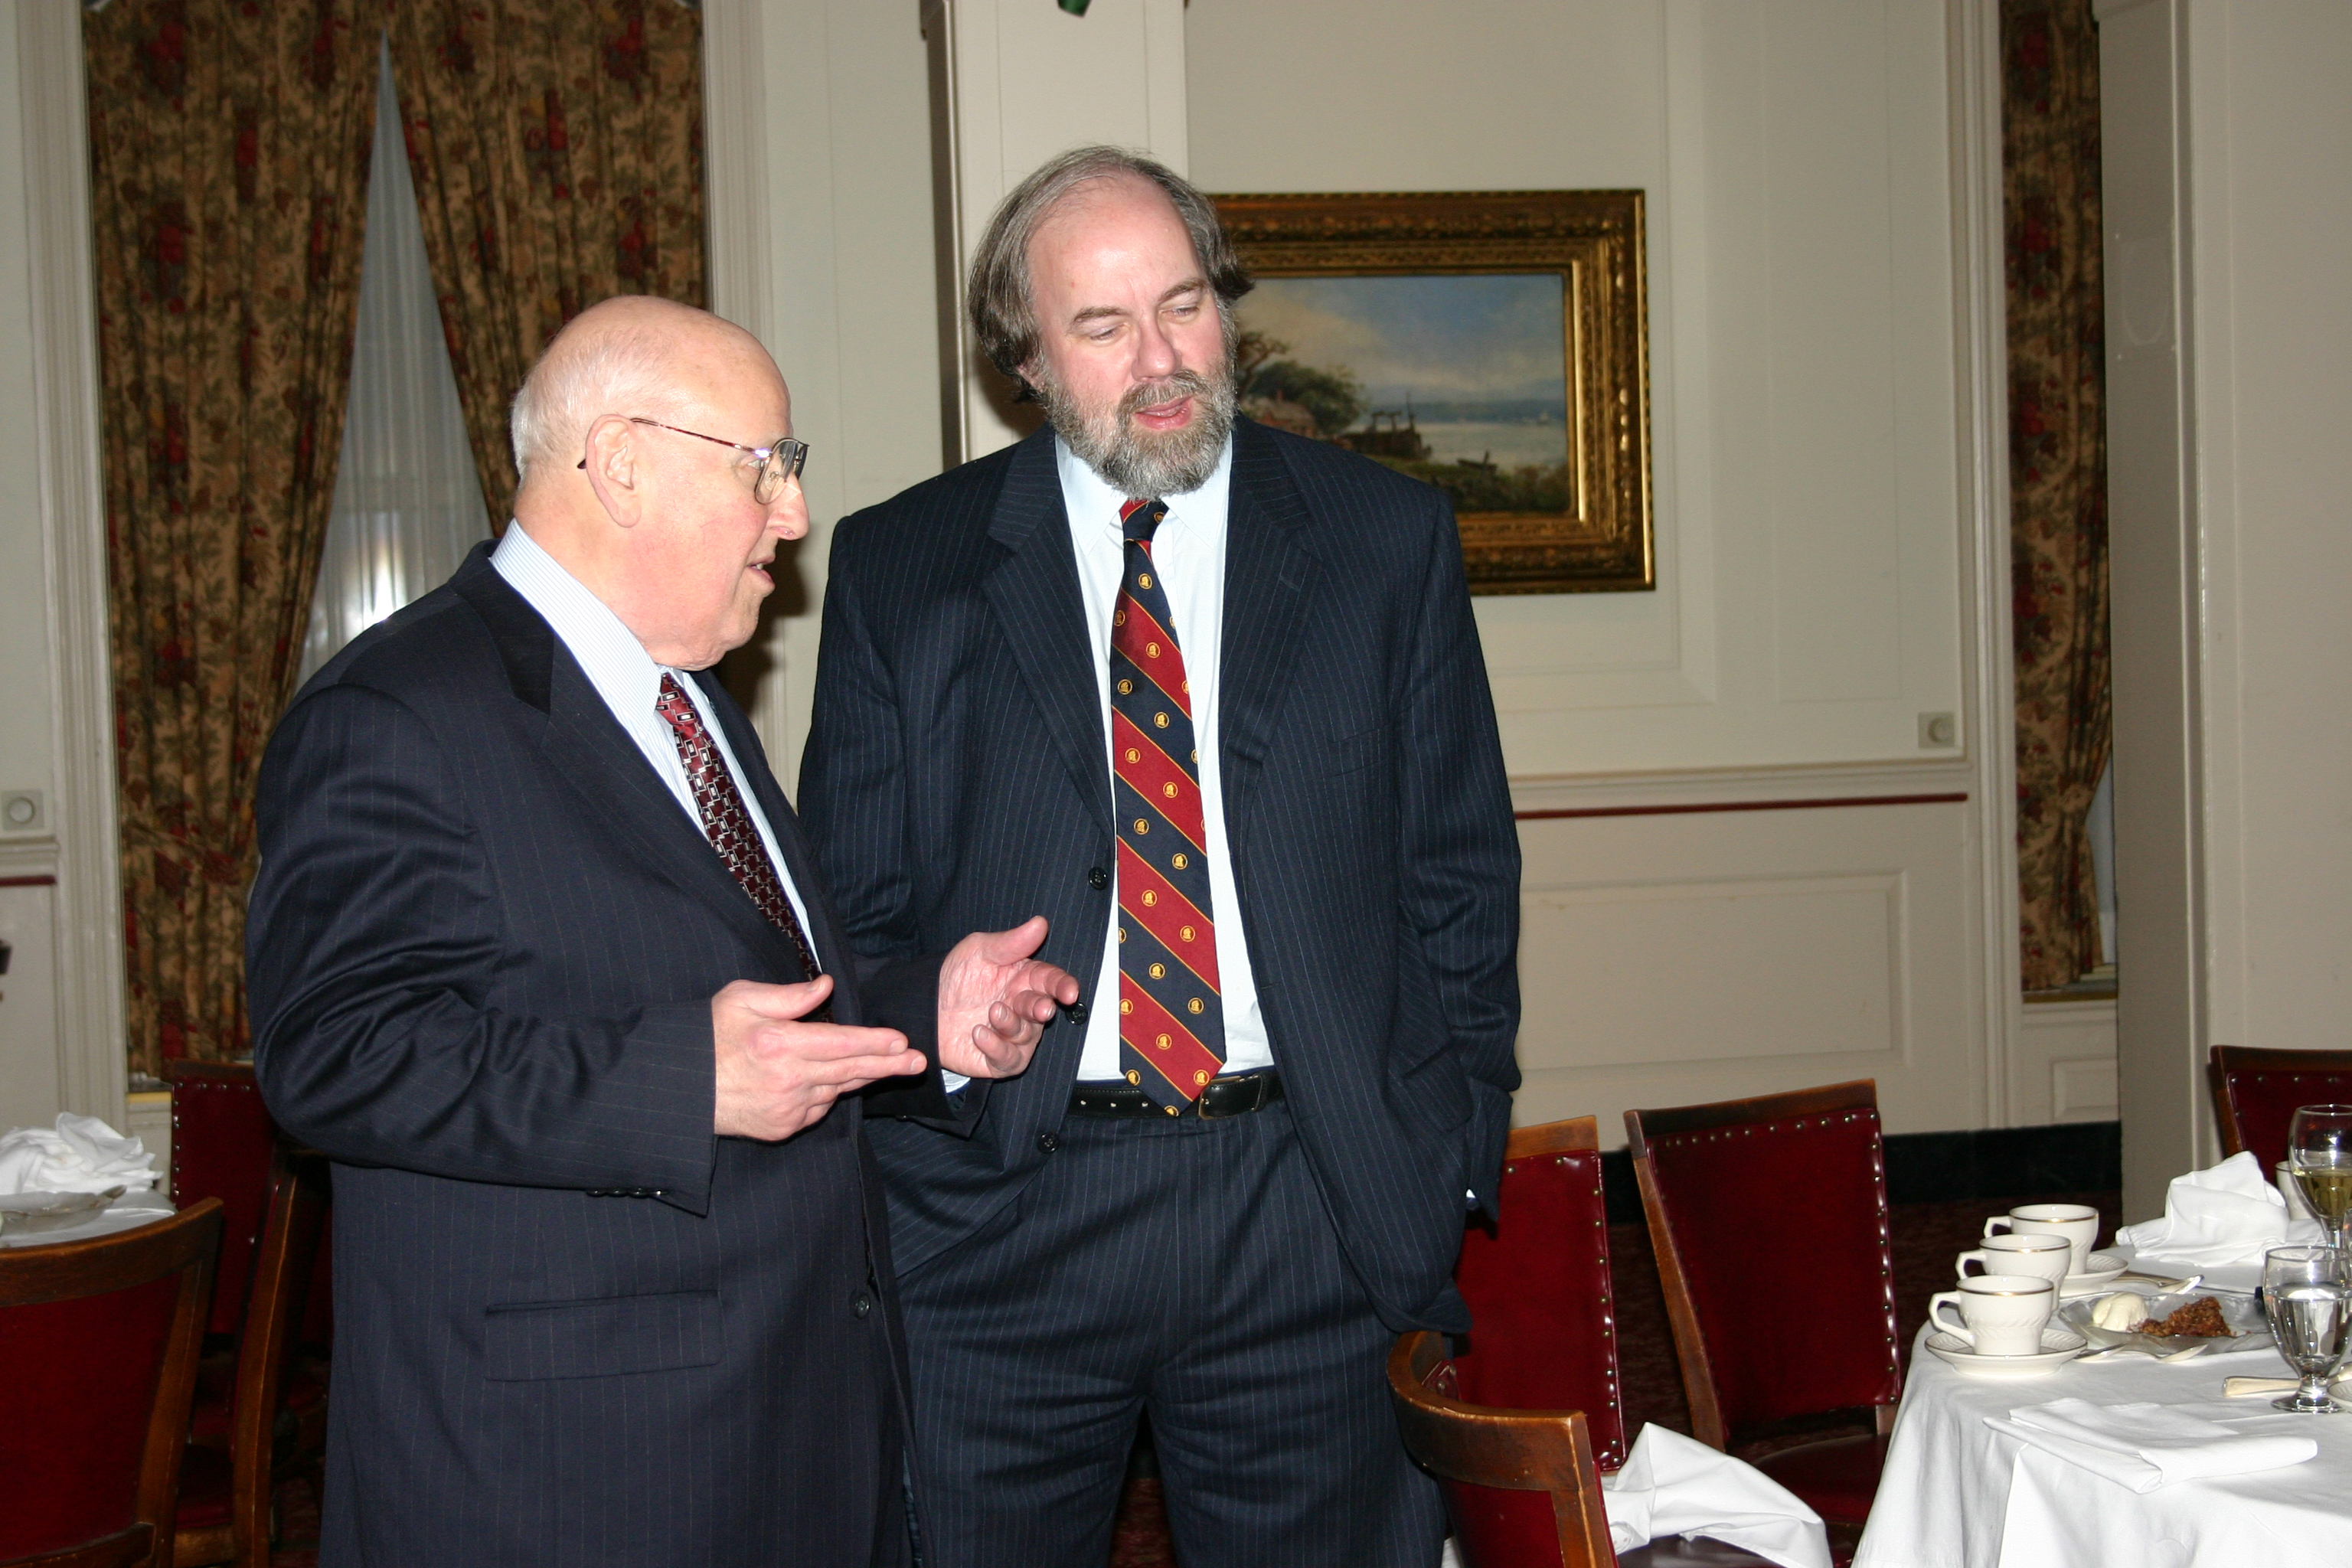 The Hon. Ralph Winter '60 and the Hon. Frank H. Easterbrook